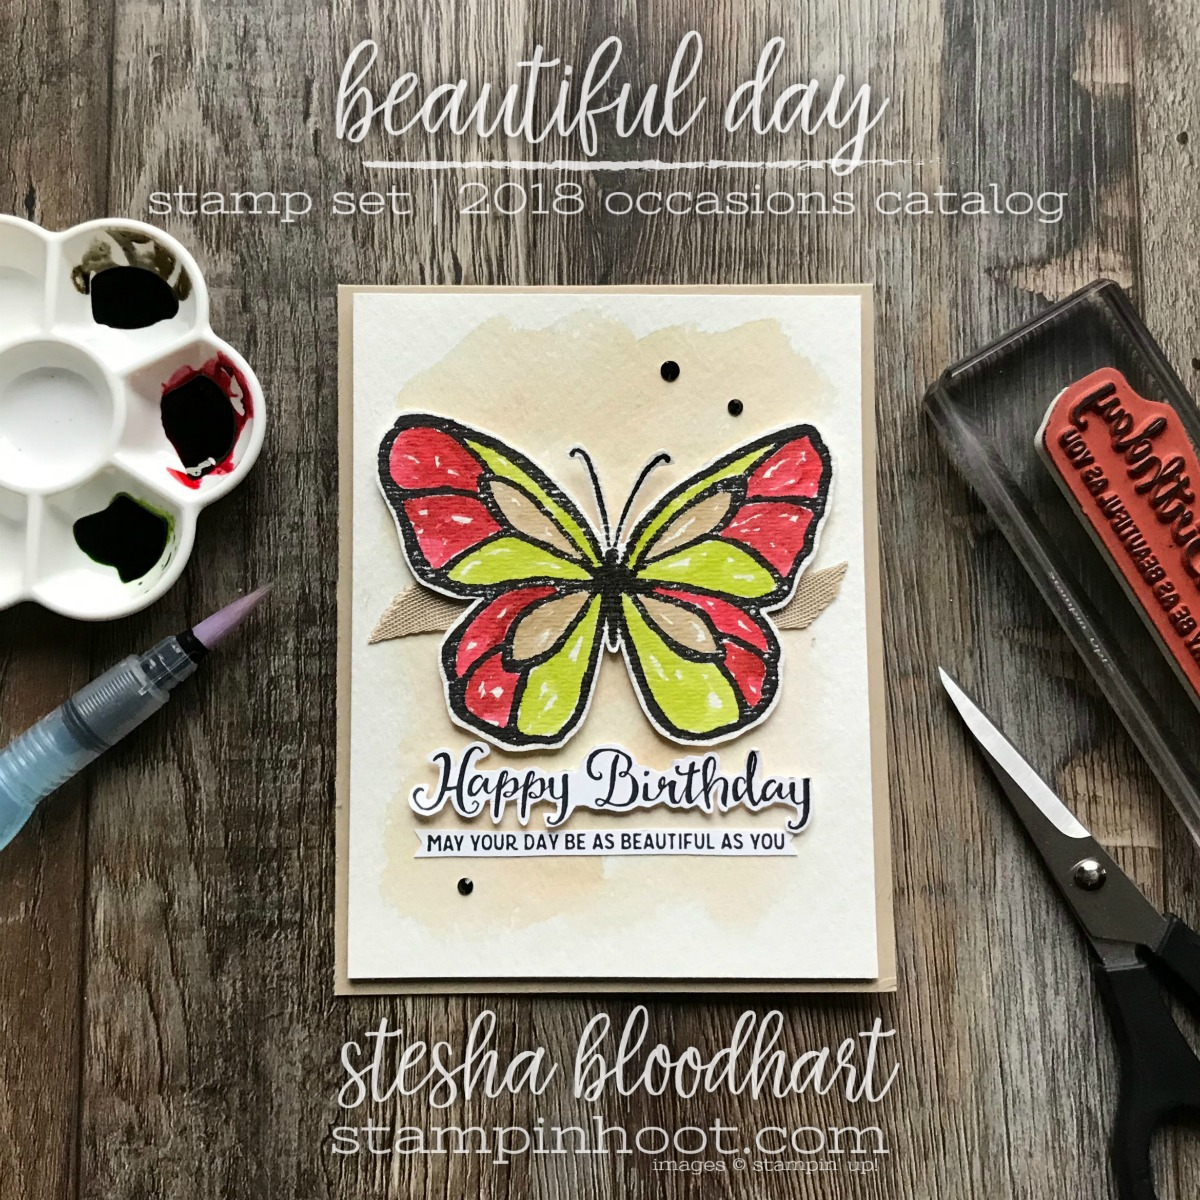 Beautiful Day Stamp Set from Stampin' Up! 2018 Occasions Catalog for GDP117 Color Challenge #gdp117 #steshabloodhart #stampinhoot #beautifulday